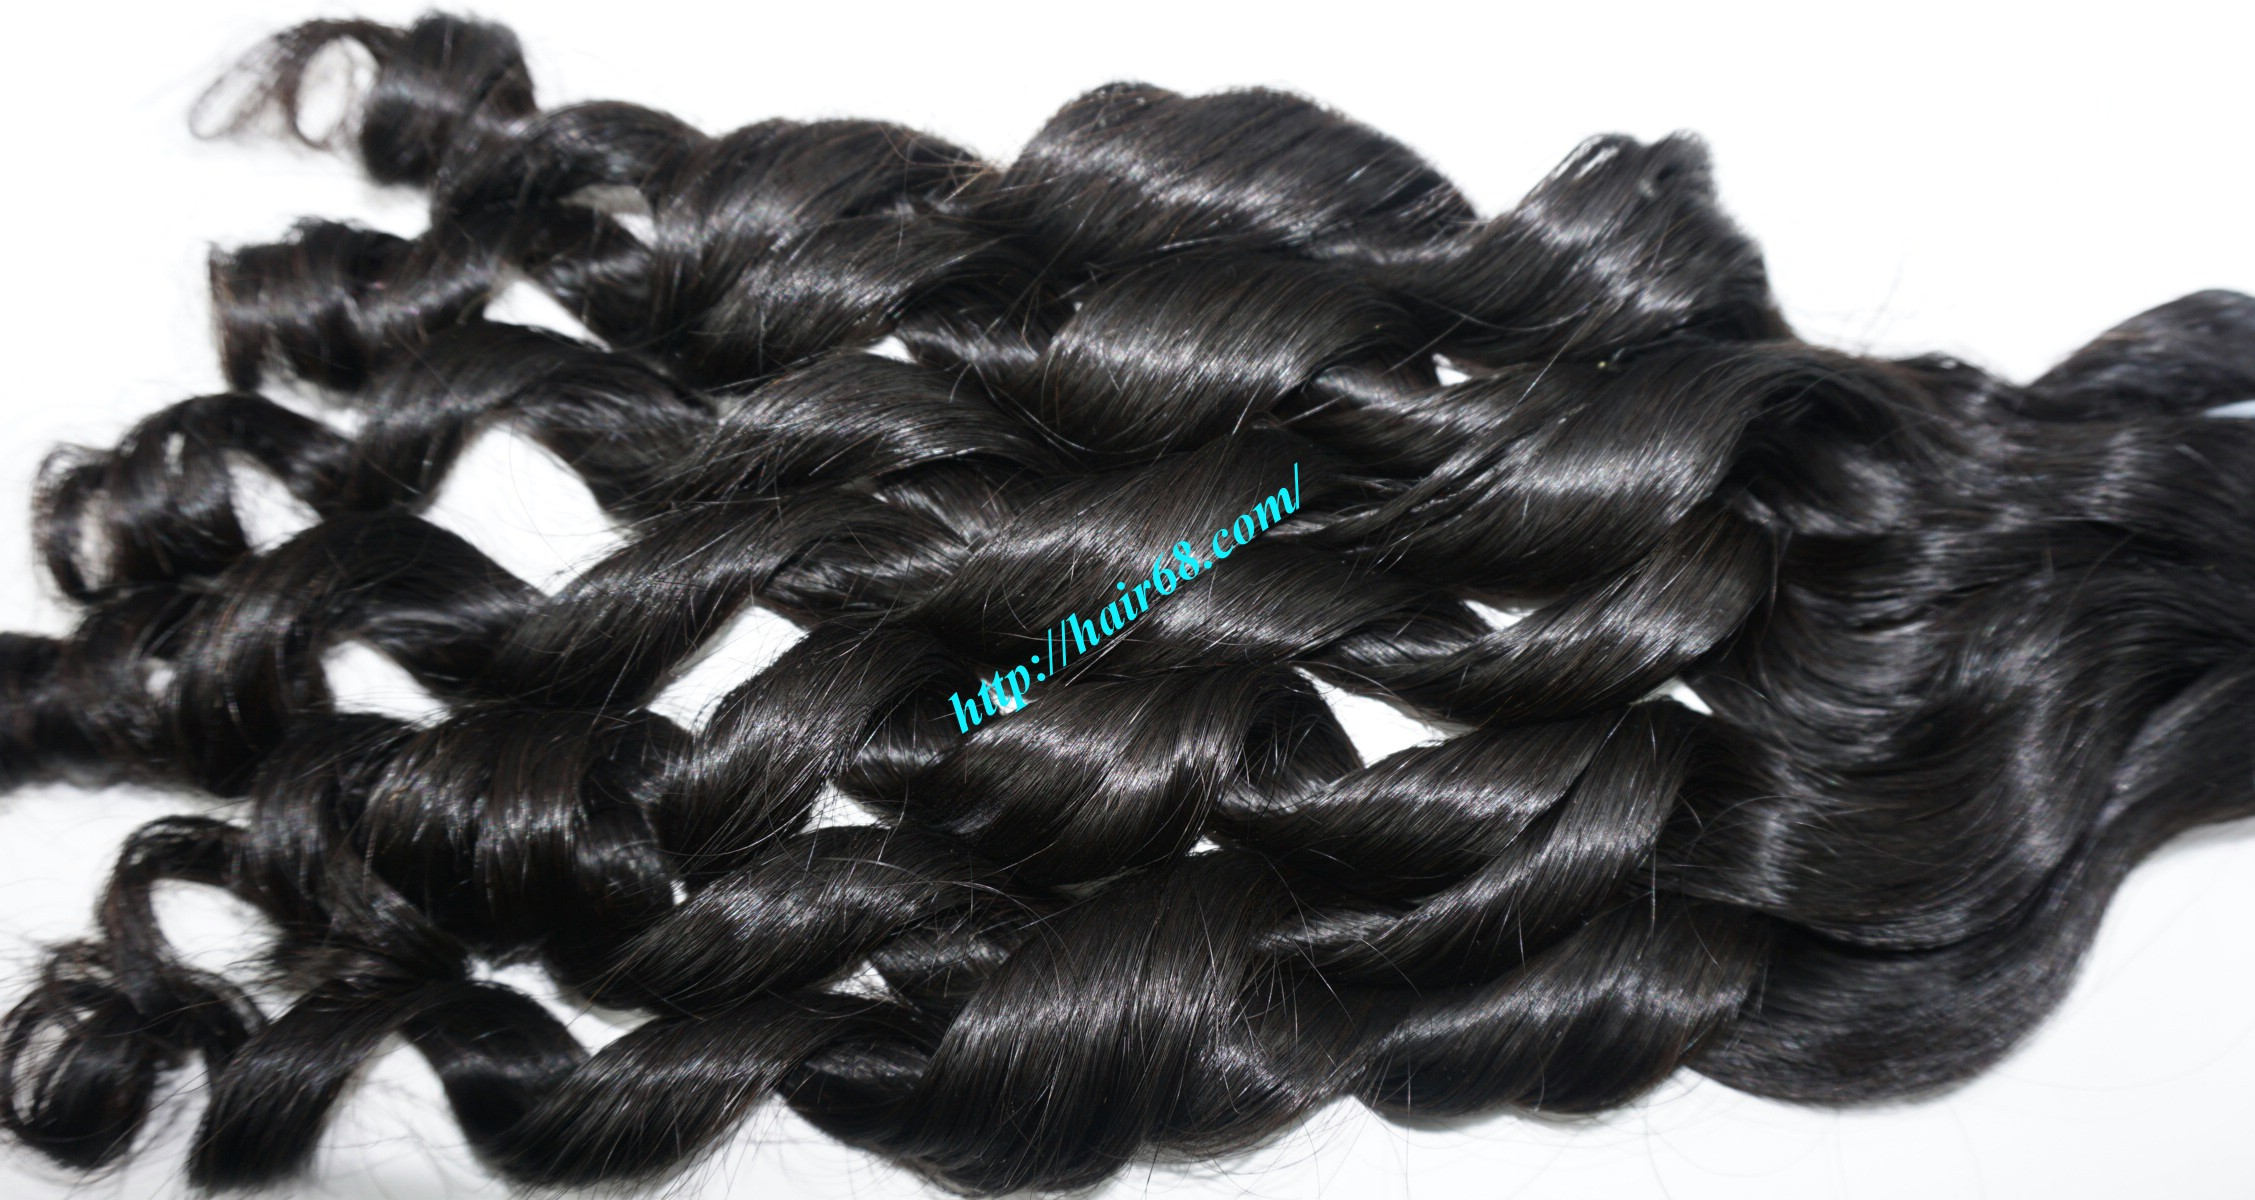 20 inch - Weave Loose Curly Hair Extensions - Double Drawn 12